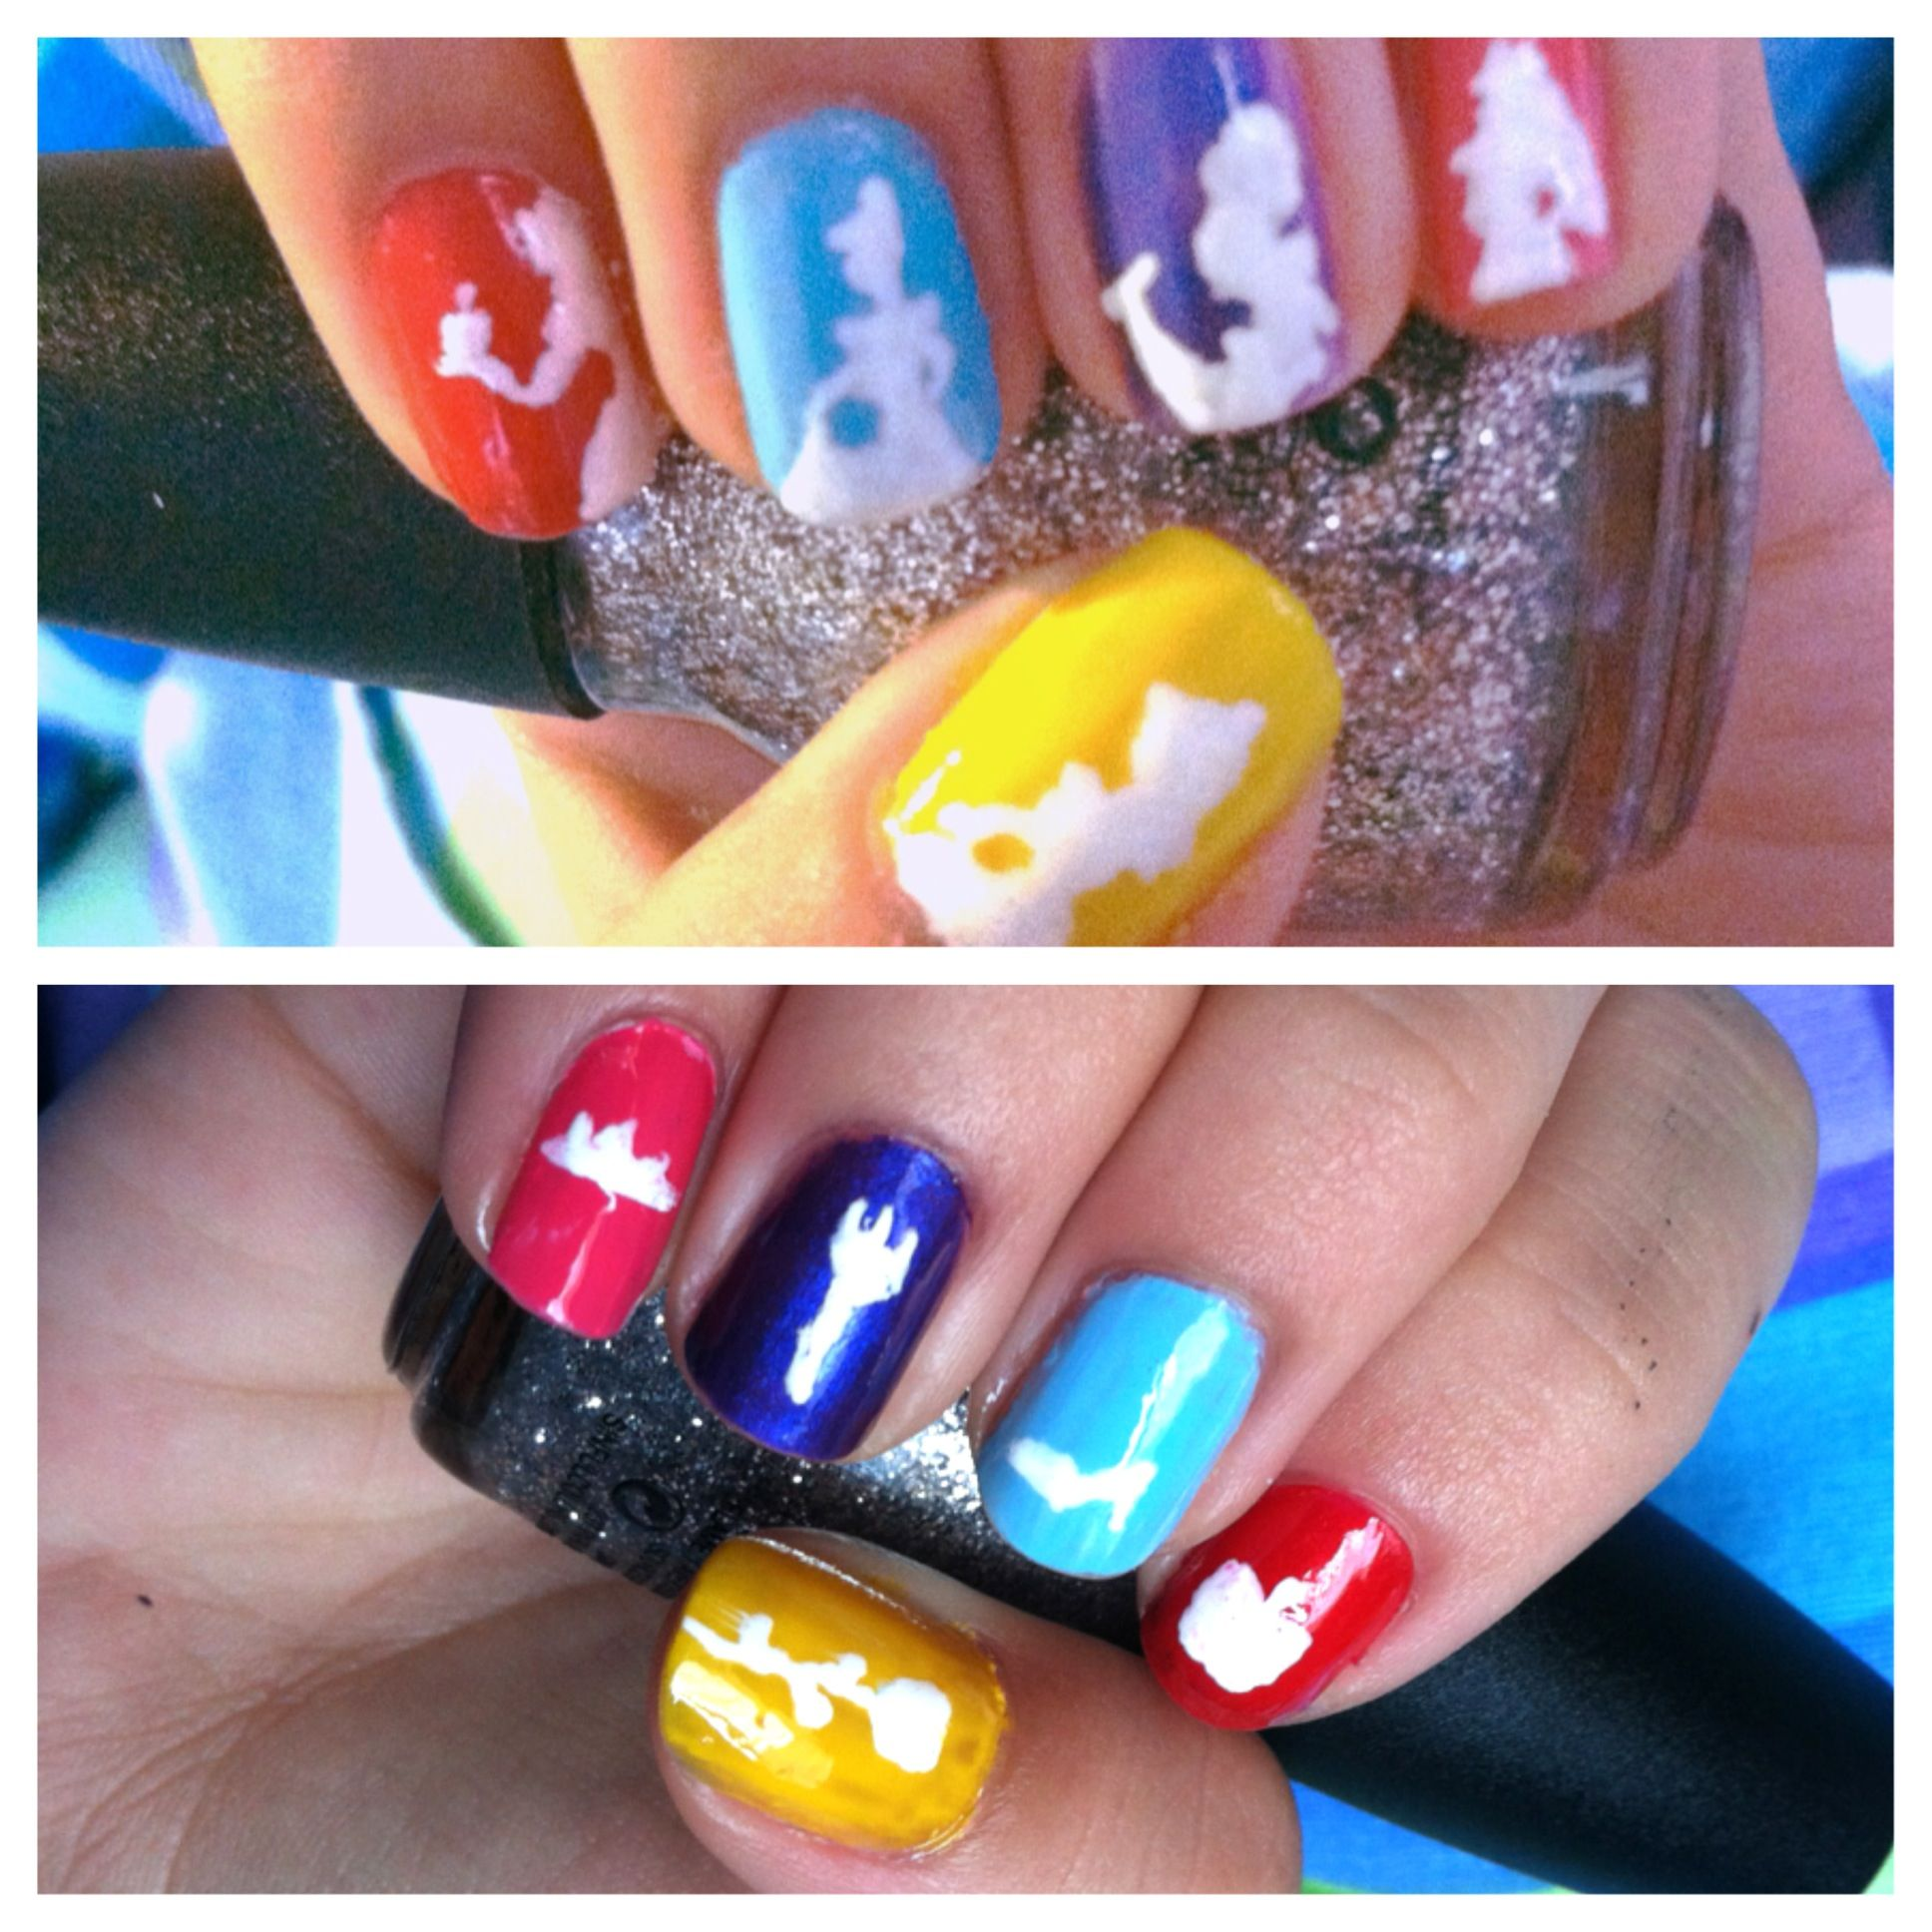 Account Suspended Nail Art Designs Videos Silhouette Nails Nails